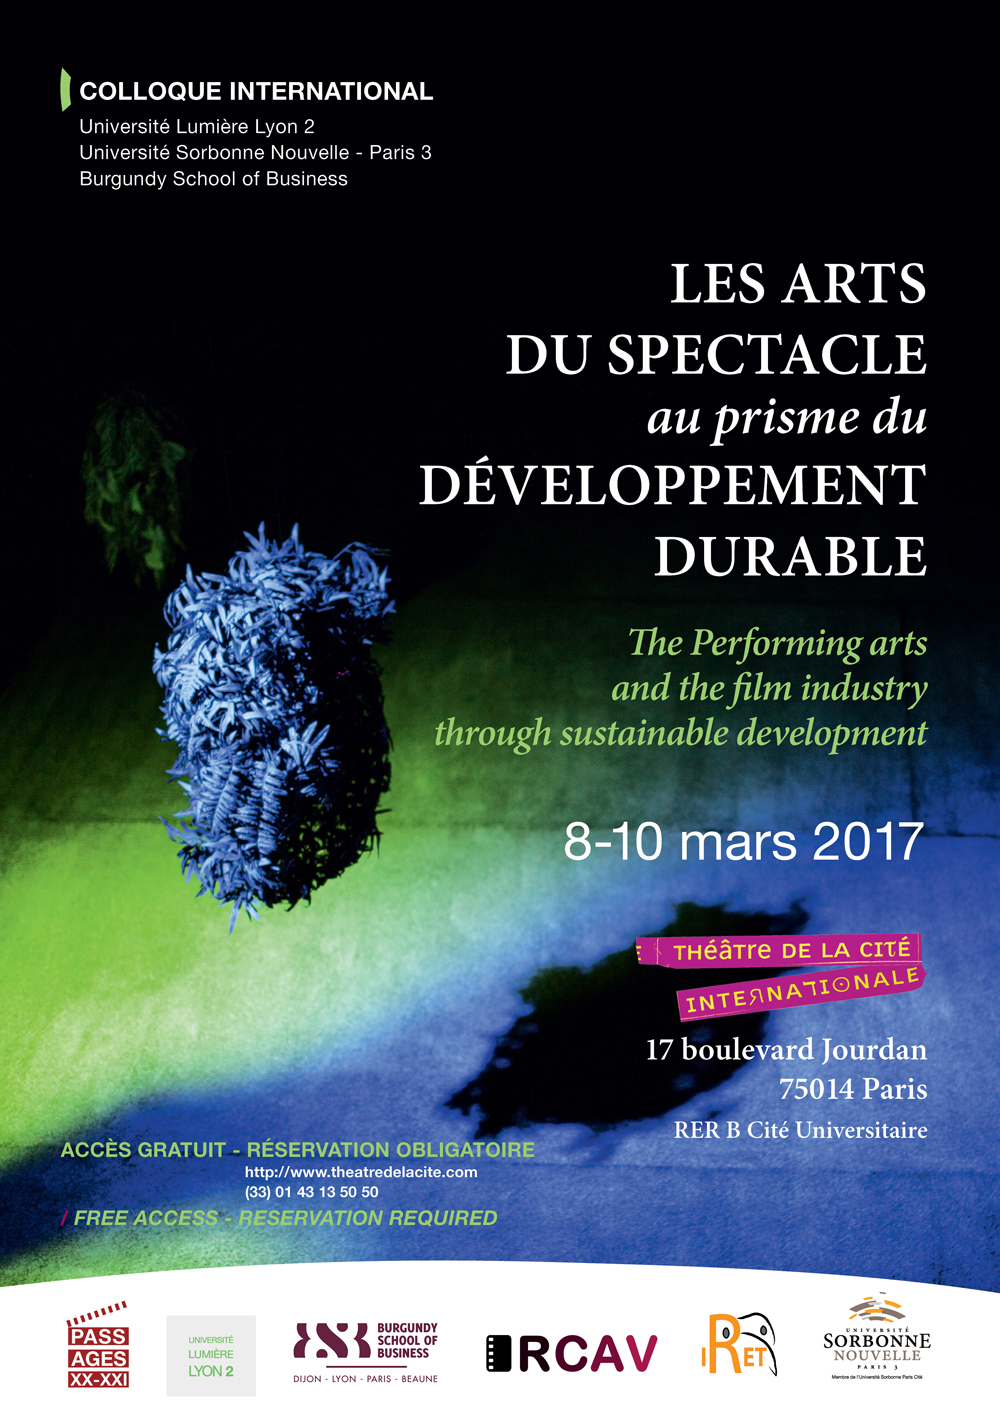 colloque-arts-du-spect-et-dev-durable.jpg